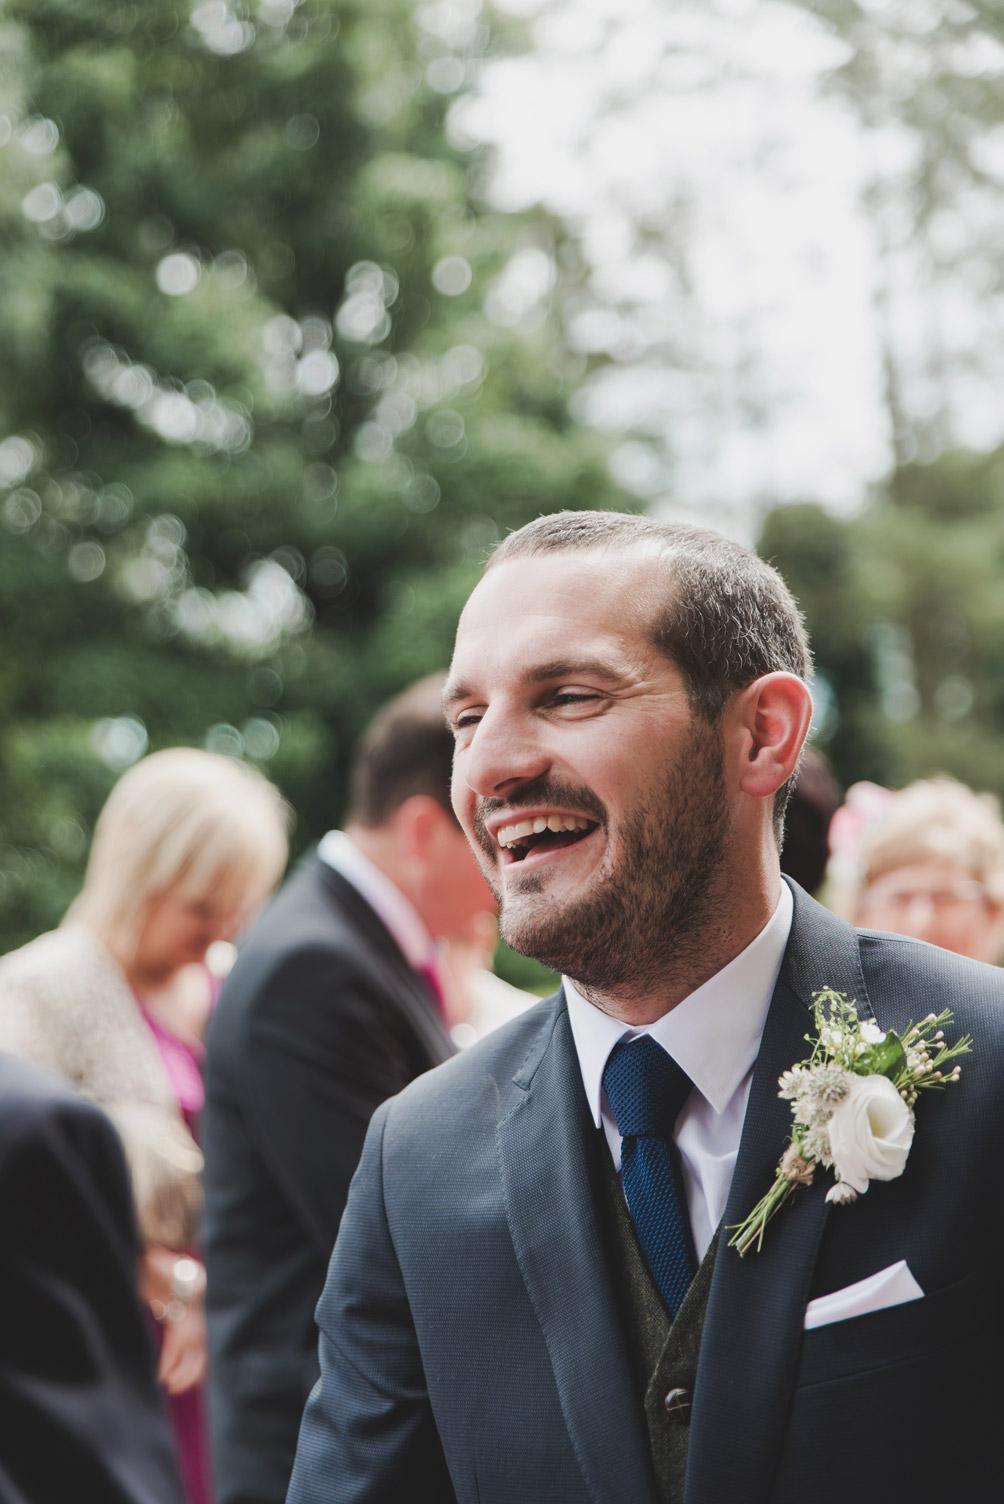 Groom laughing outside church. Wedding photographers meath.